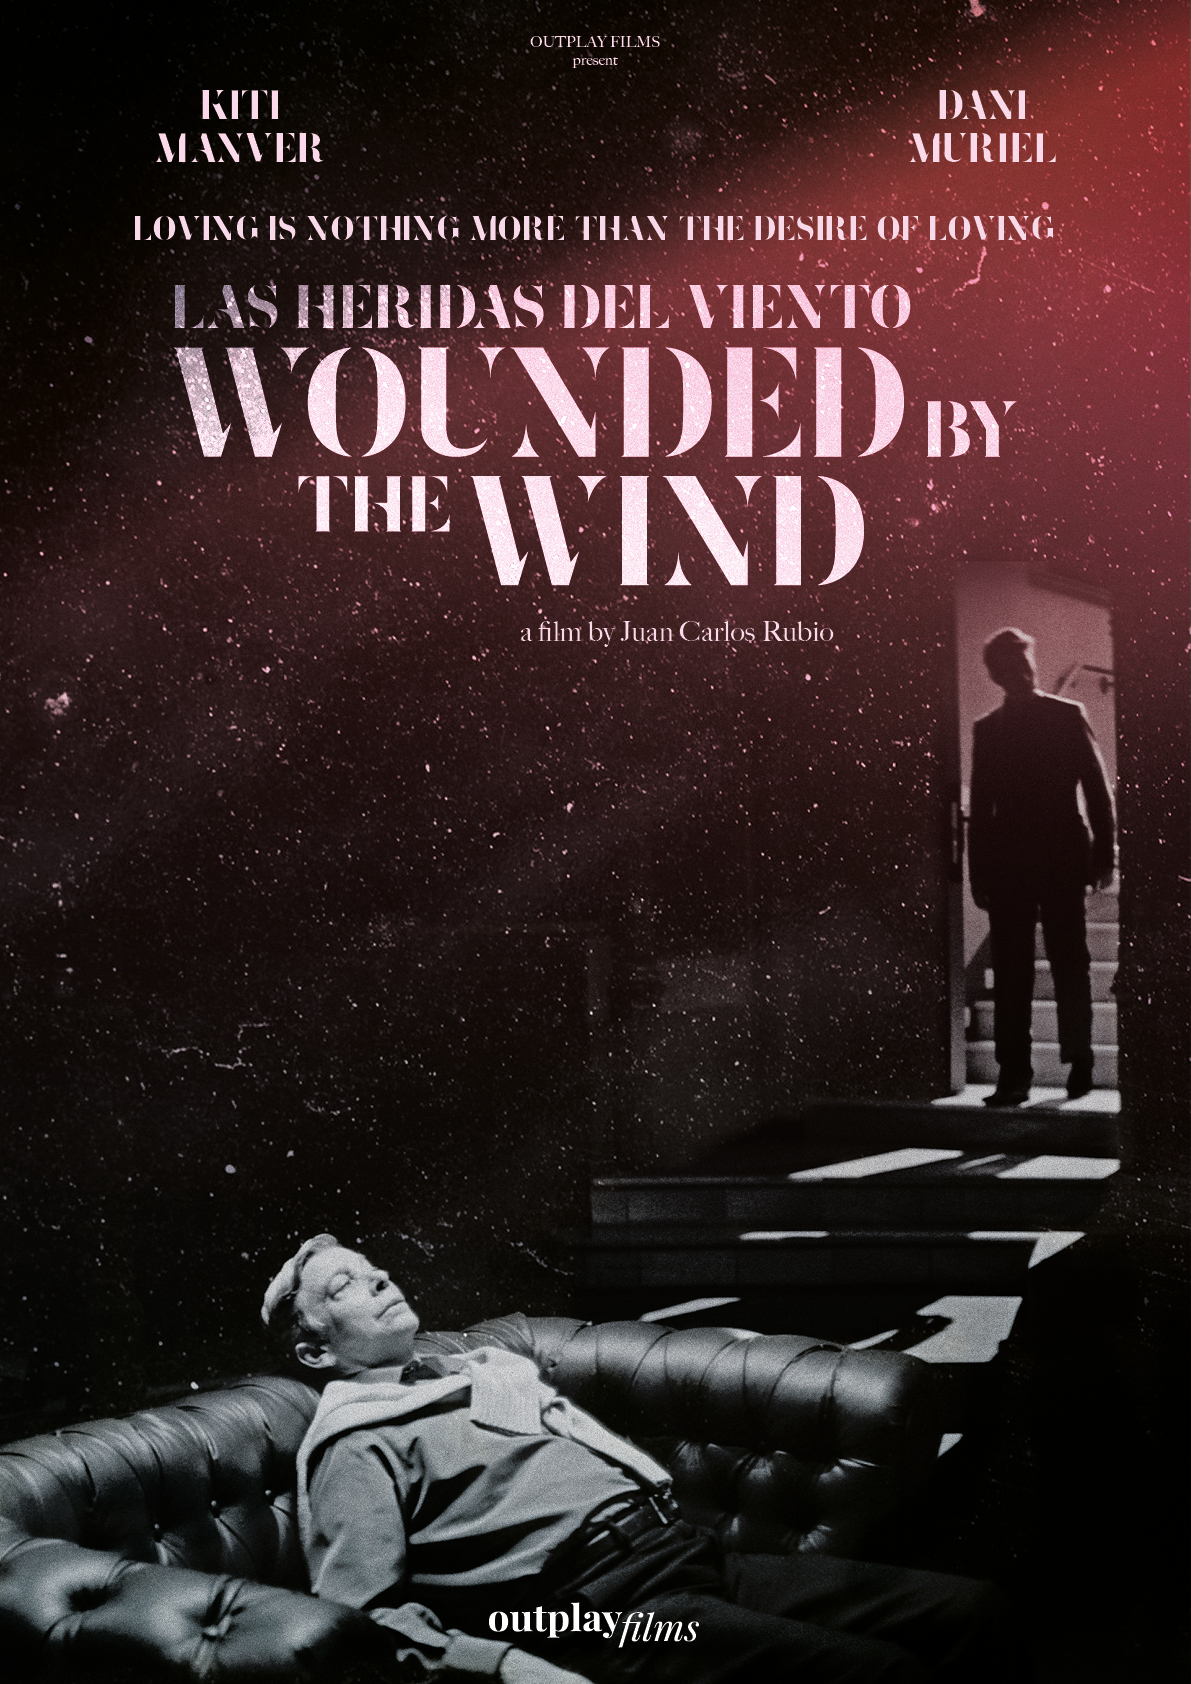 LAS HERIDAS DEL VIENTO (WOUNDED BY THE WIND)